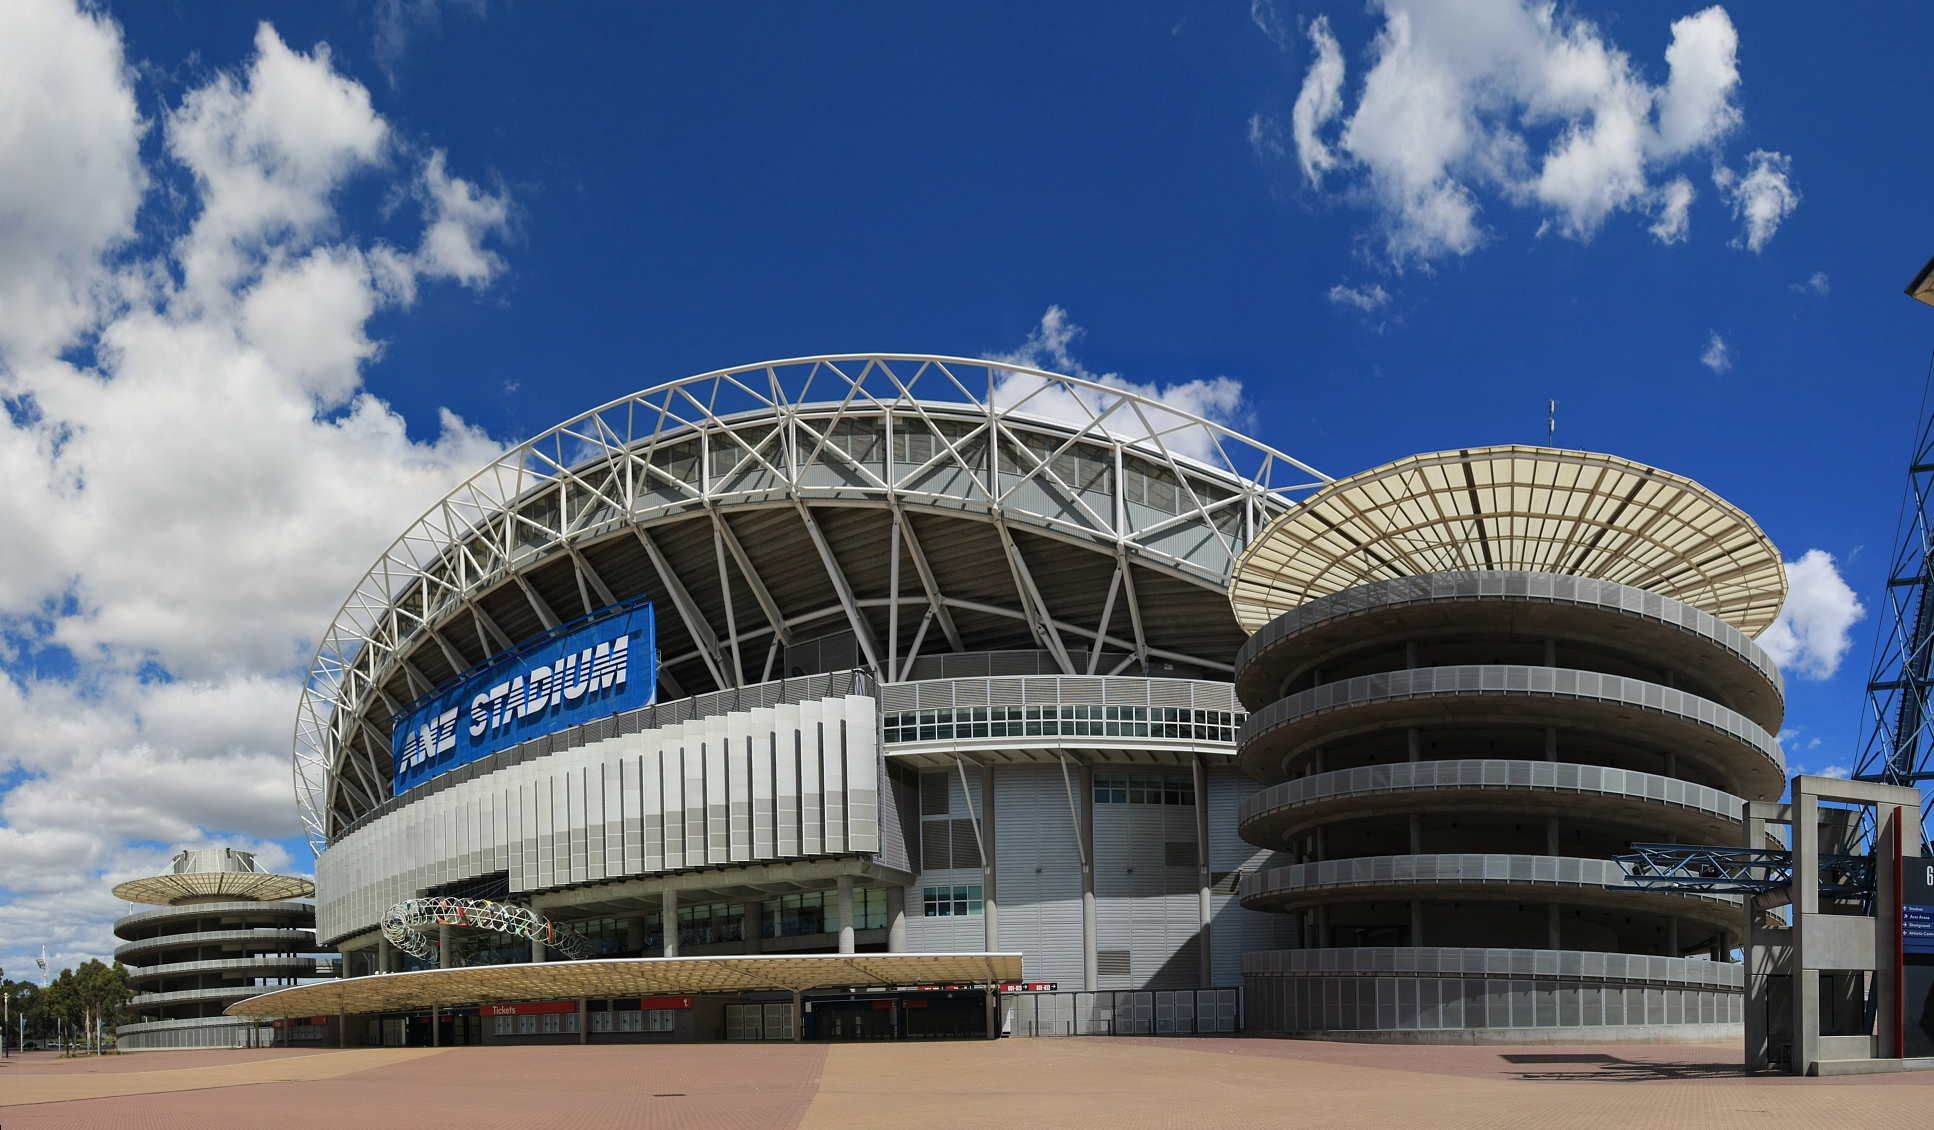 Sydney Olympic Park New South Wales Stadium Australia 2